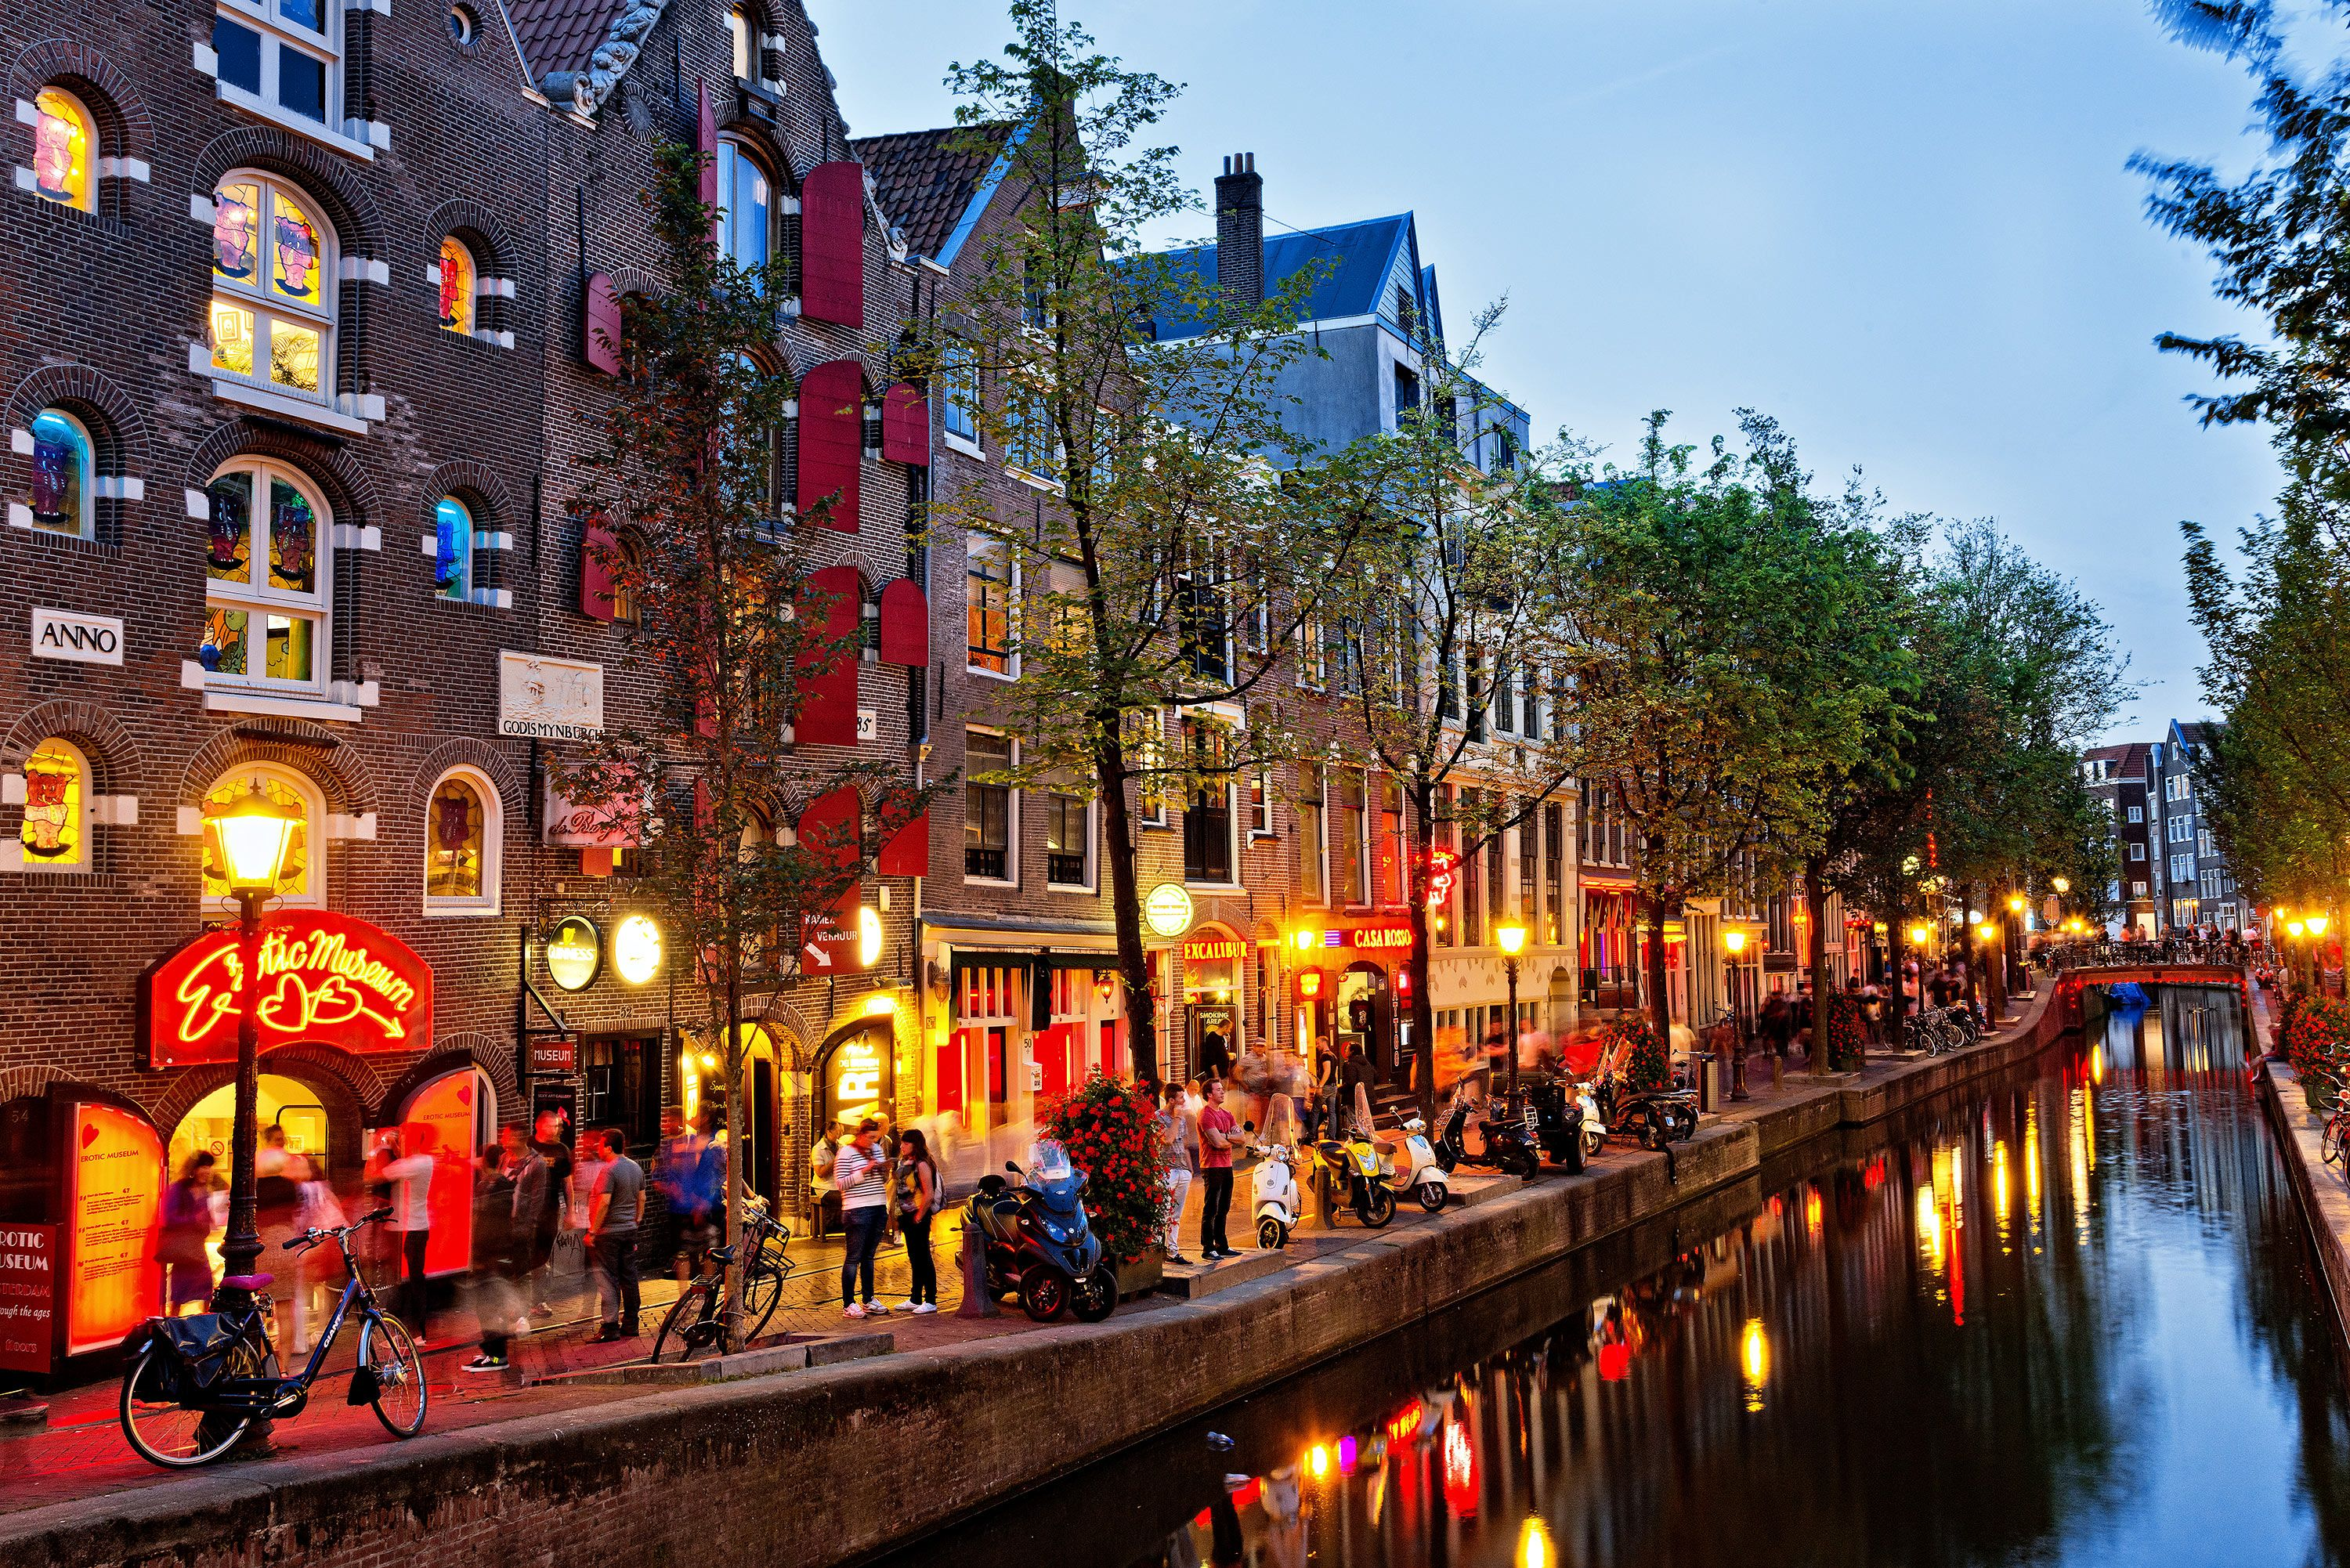 Has surprised erotic destinations in amsterdam join